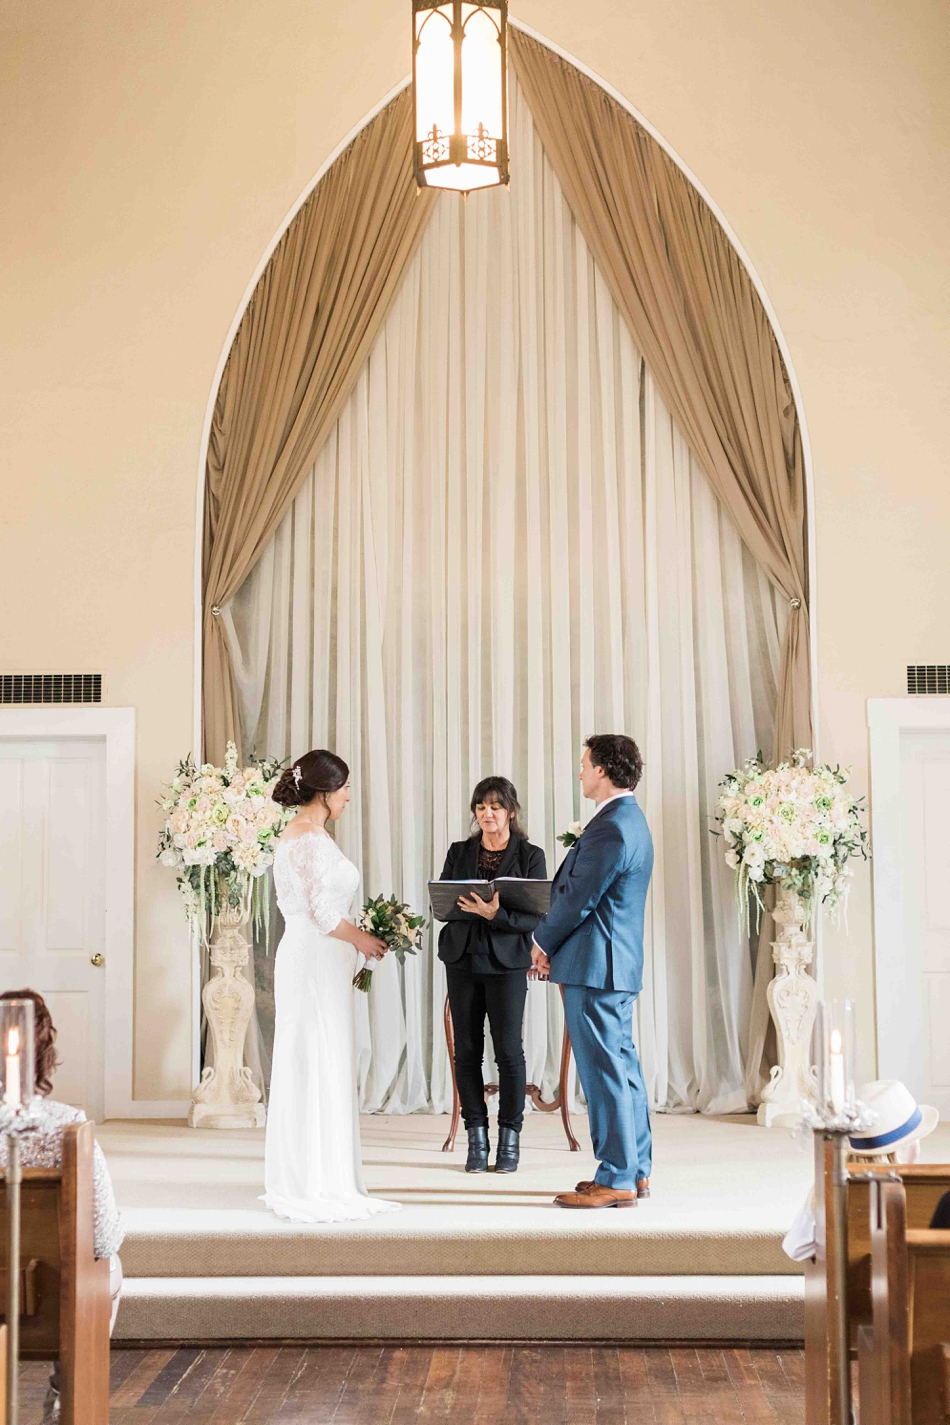 Photo from a ceremony of an intimate wedding at Belle Chapel in Snohomish, a wedding venue near Seattle, WA.   Joanna Monger Photography   Snohomish Wedding Photographer